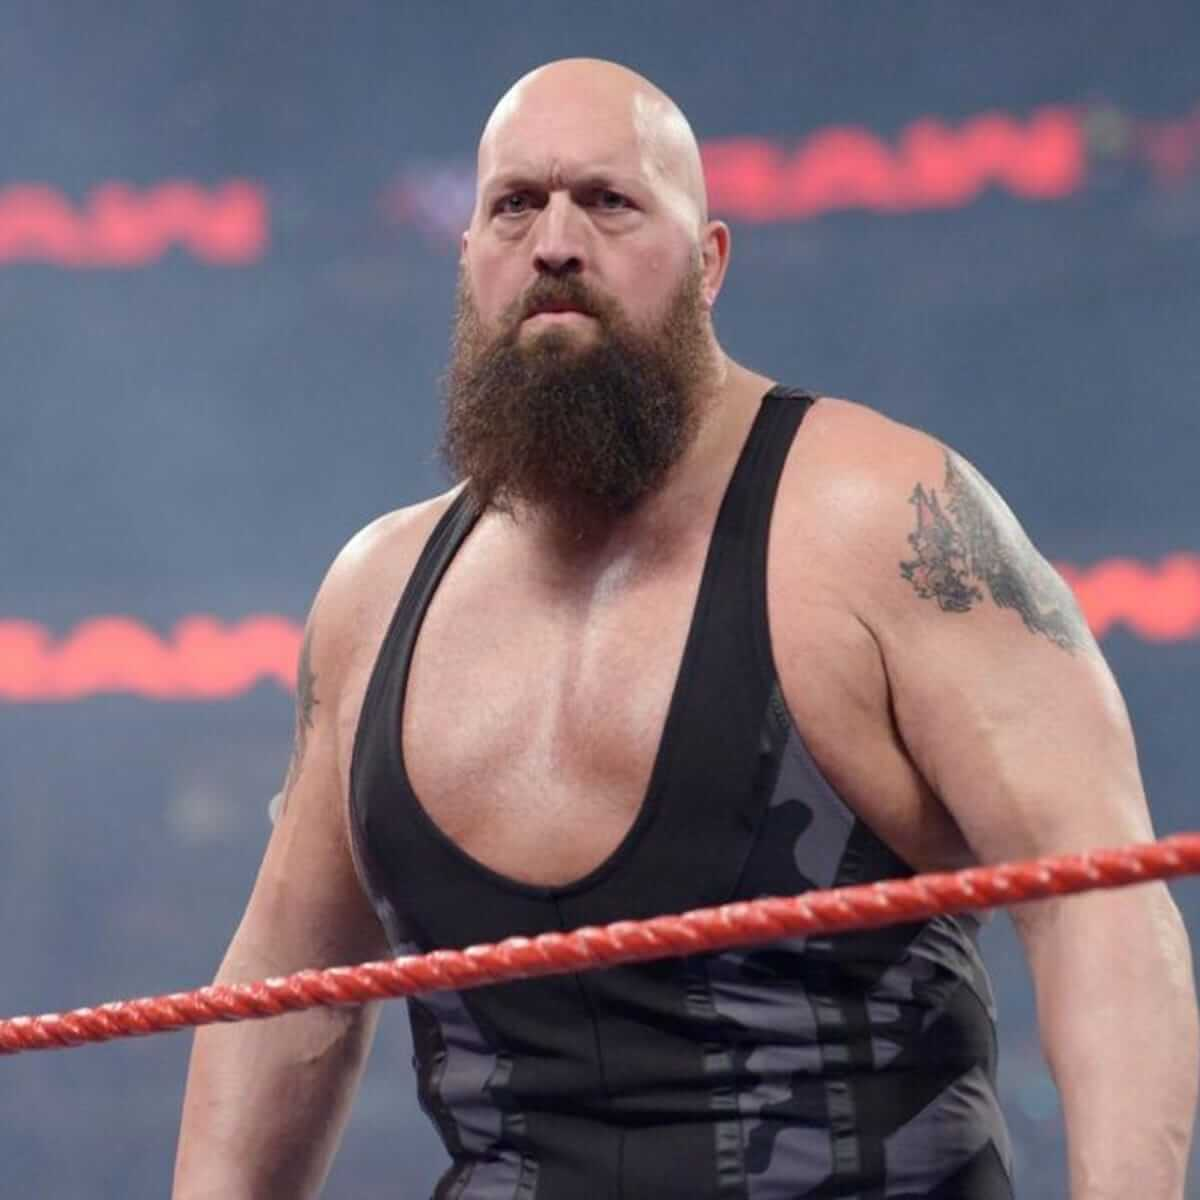 The Big Show wants to play The Kingpin